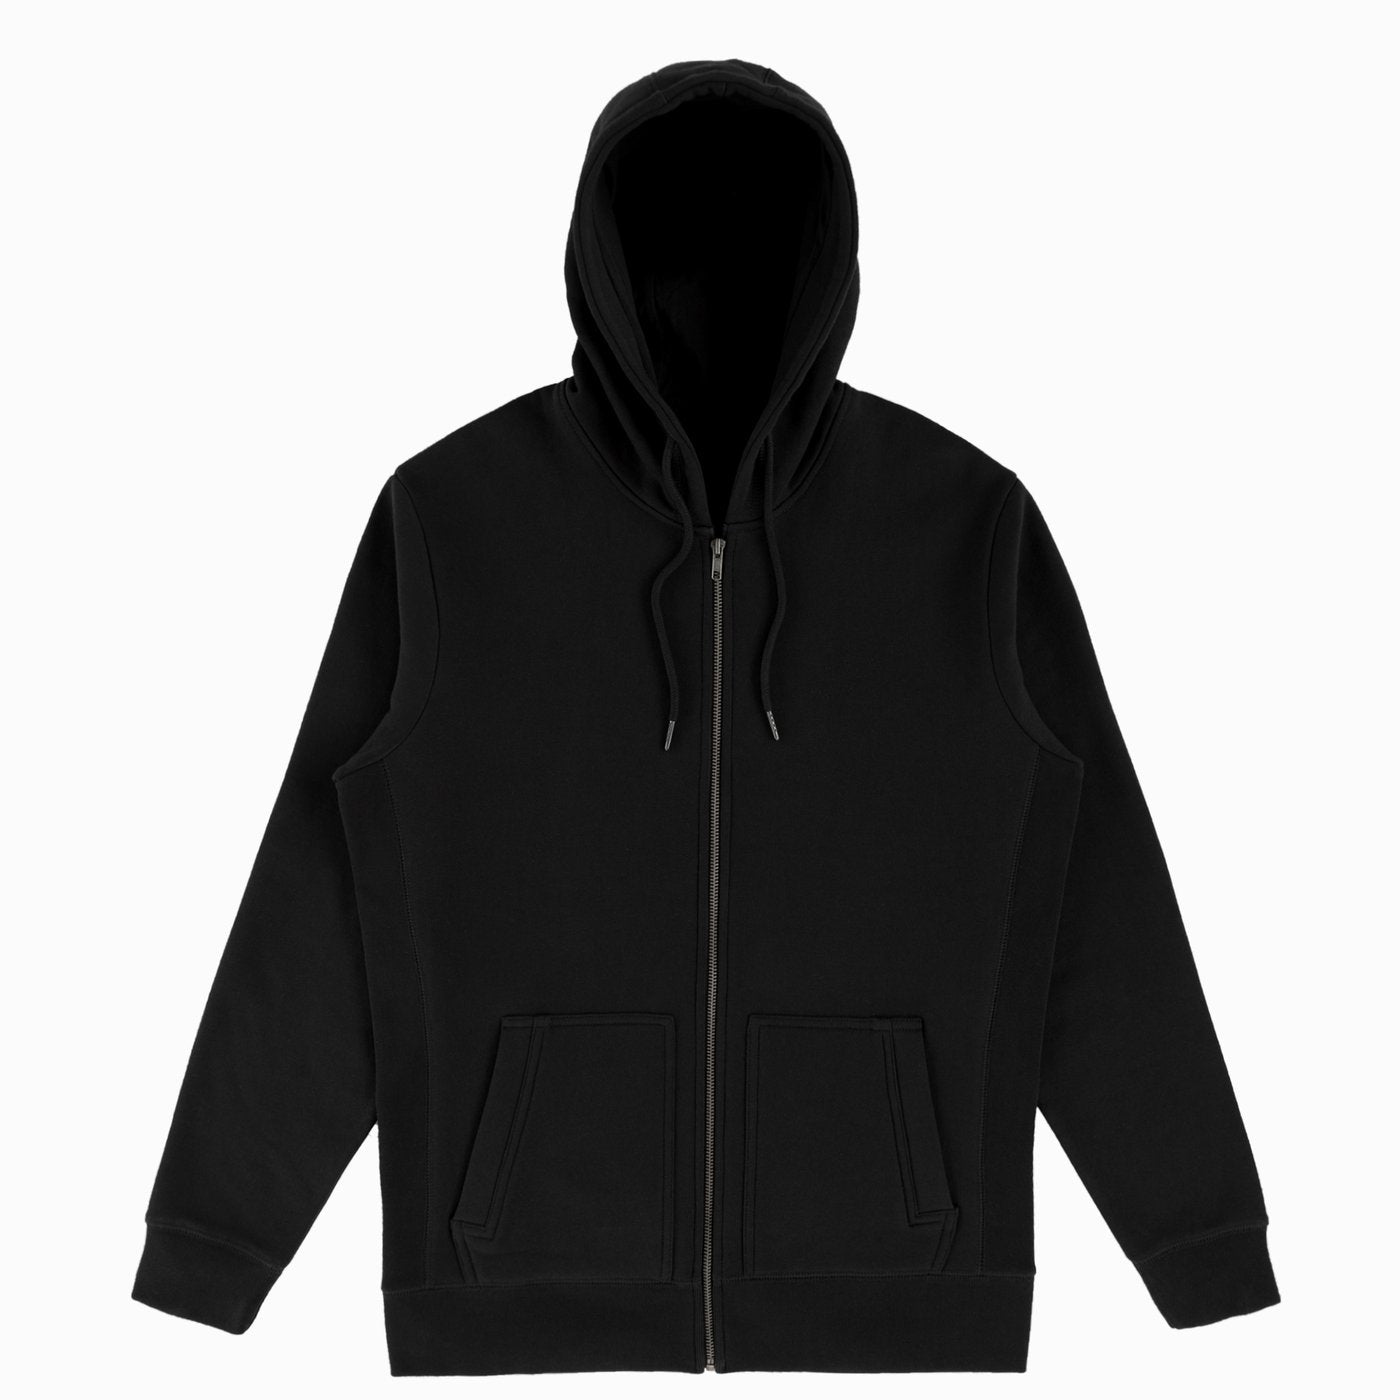 Black Organic Cotton Zip-Up Men's Sweatshirt